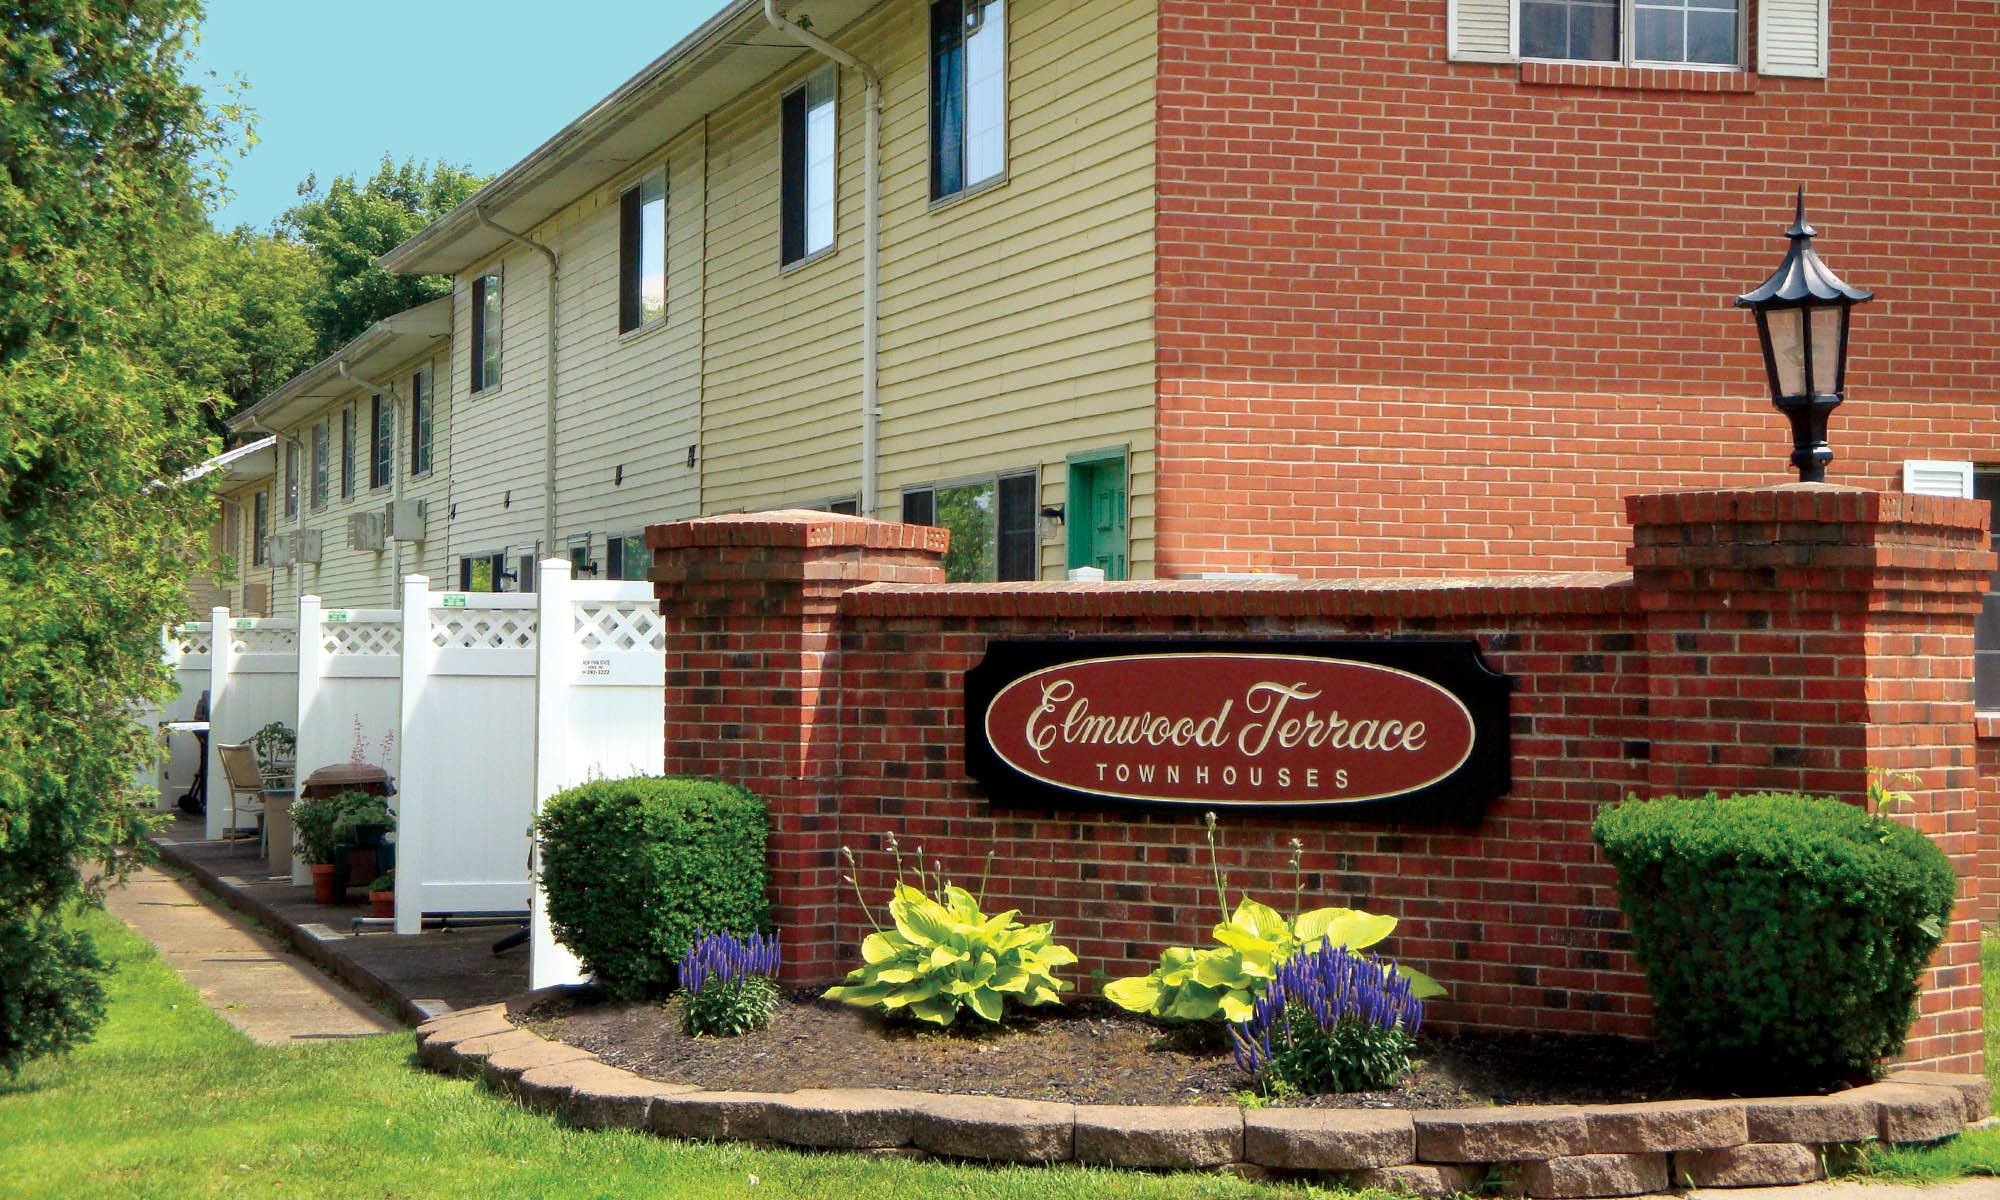 Highland park neighborhood rochester ny apartments for rent elmwood terrace apartments and - Terras appartement lay outs ...